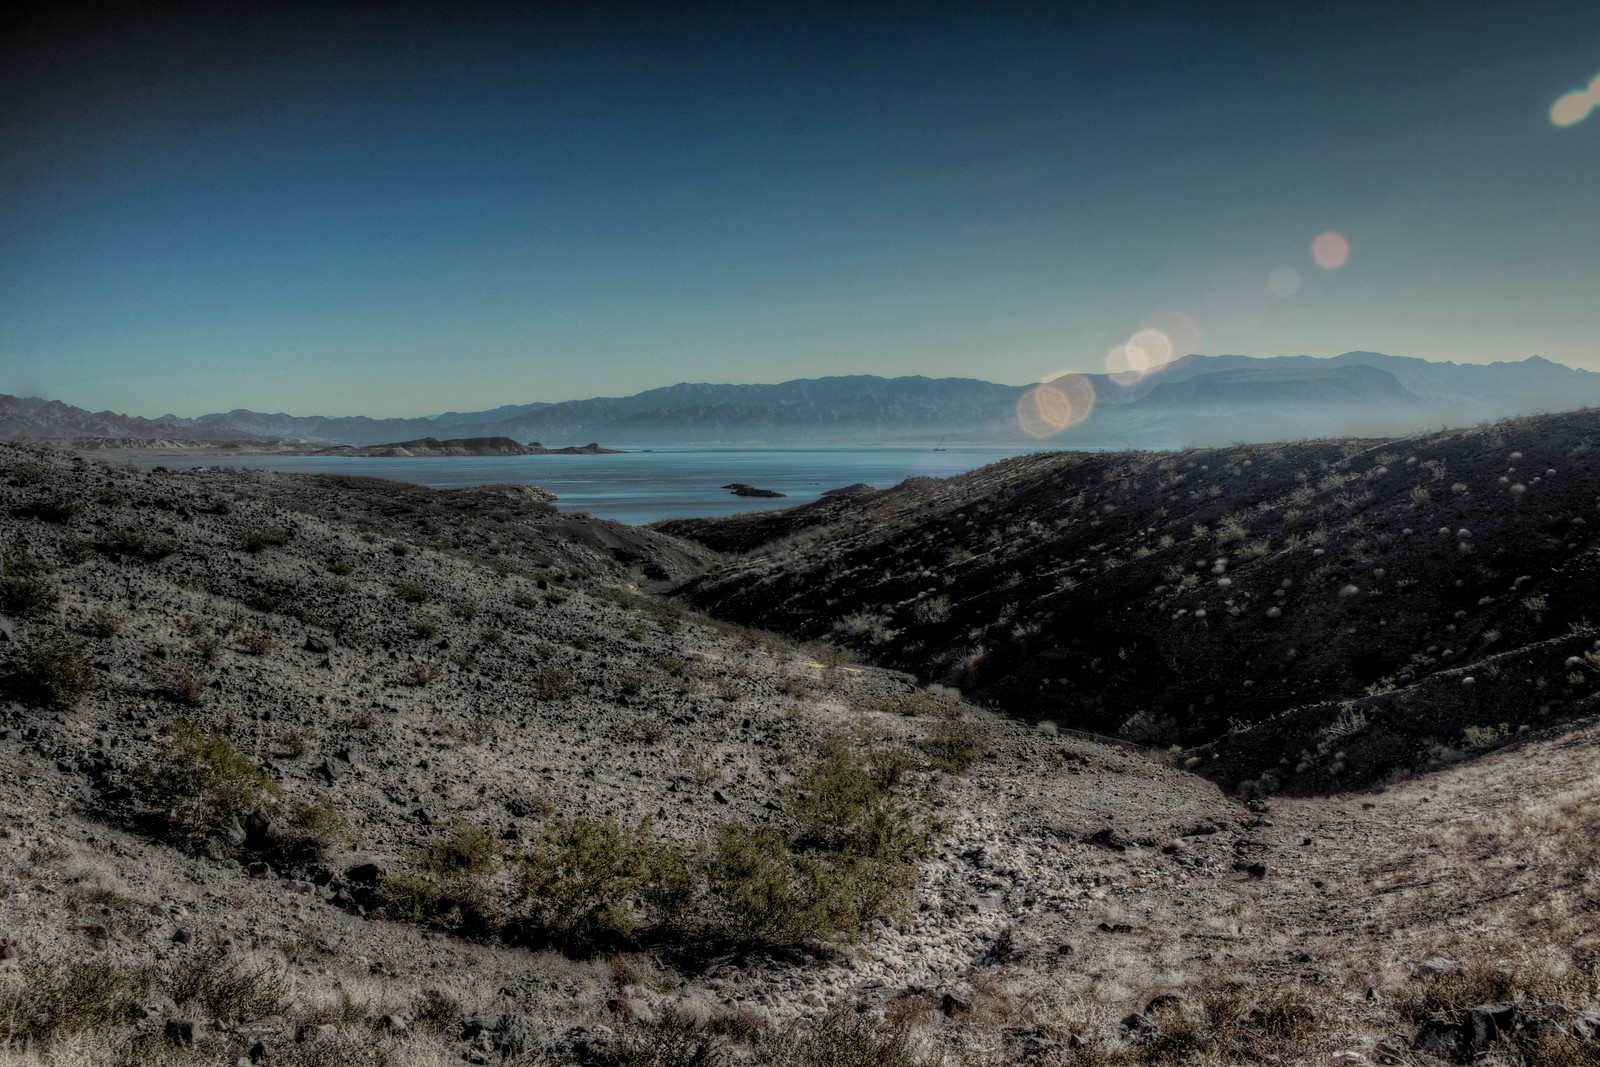 Early Morning Lake Mead